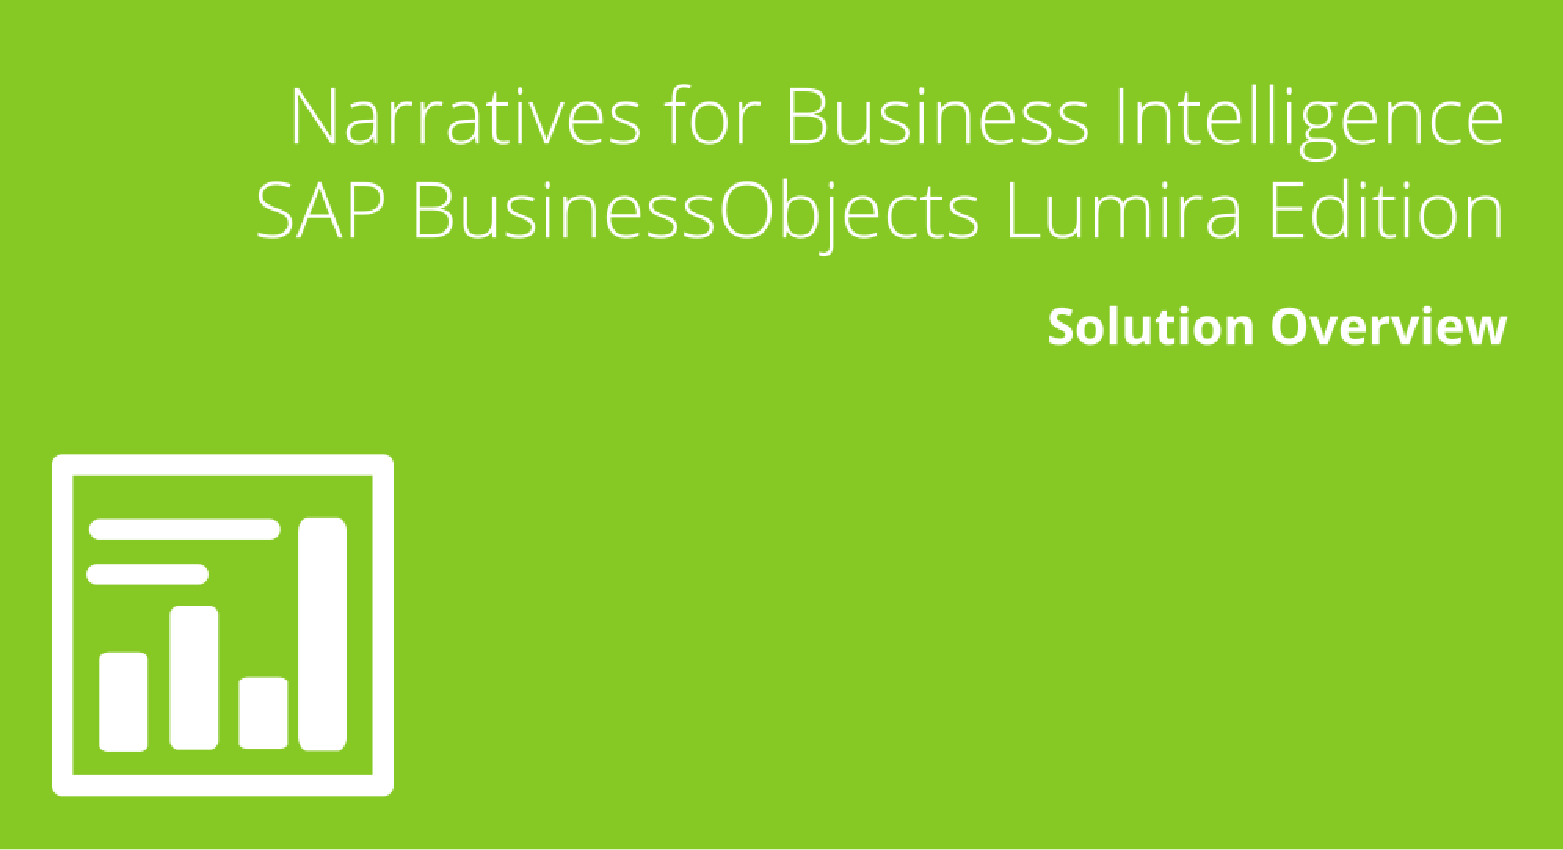 Narratives for Business Intelligence, SAP BusinessObjects Lumira Edition Solution Overview